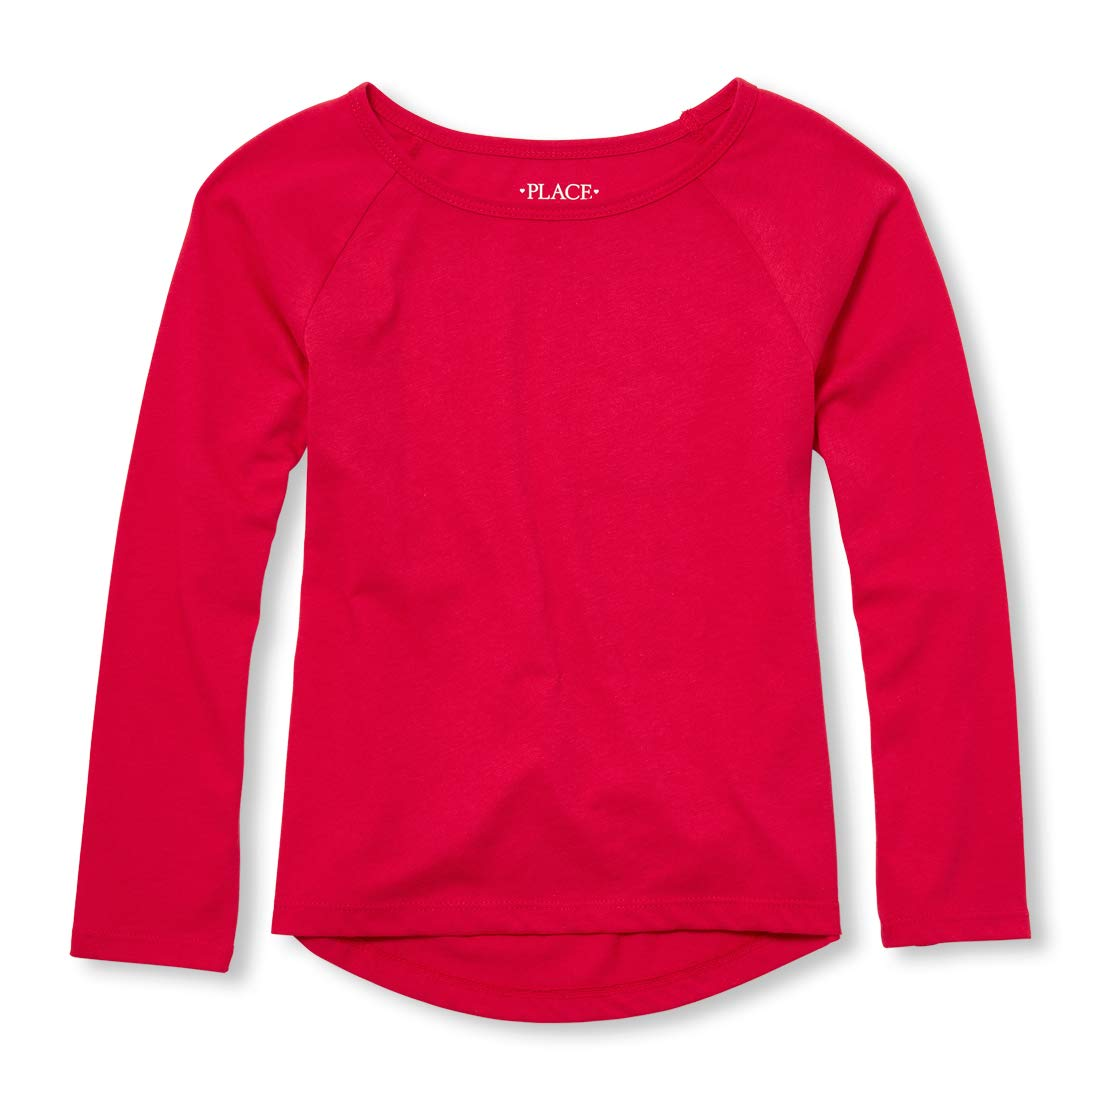 The Childrens Place Big Girls Long Sleeve Tops